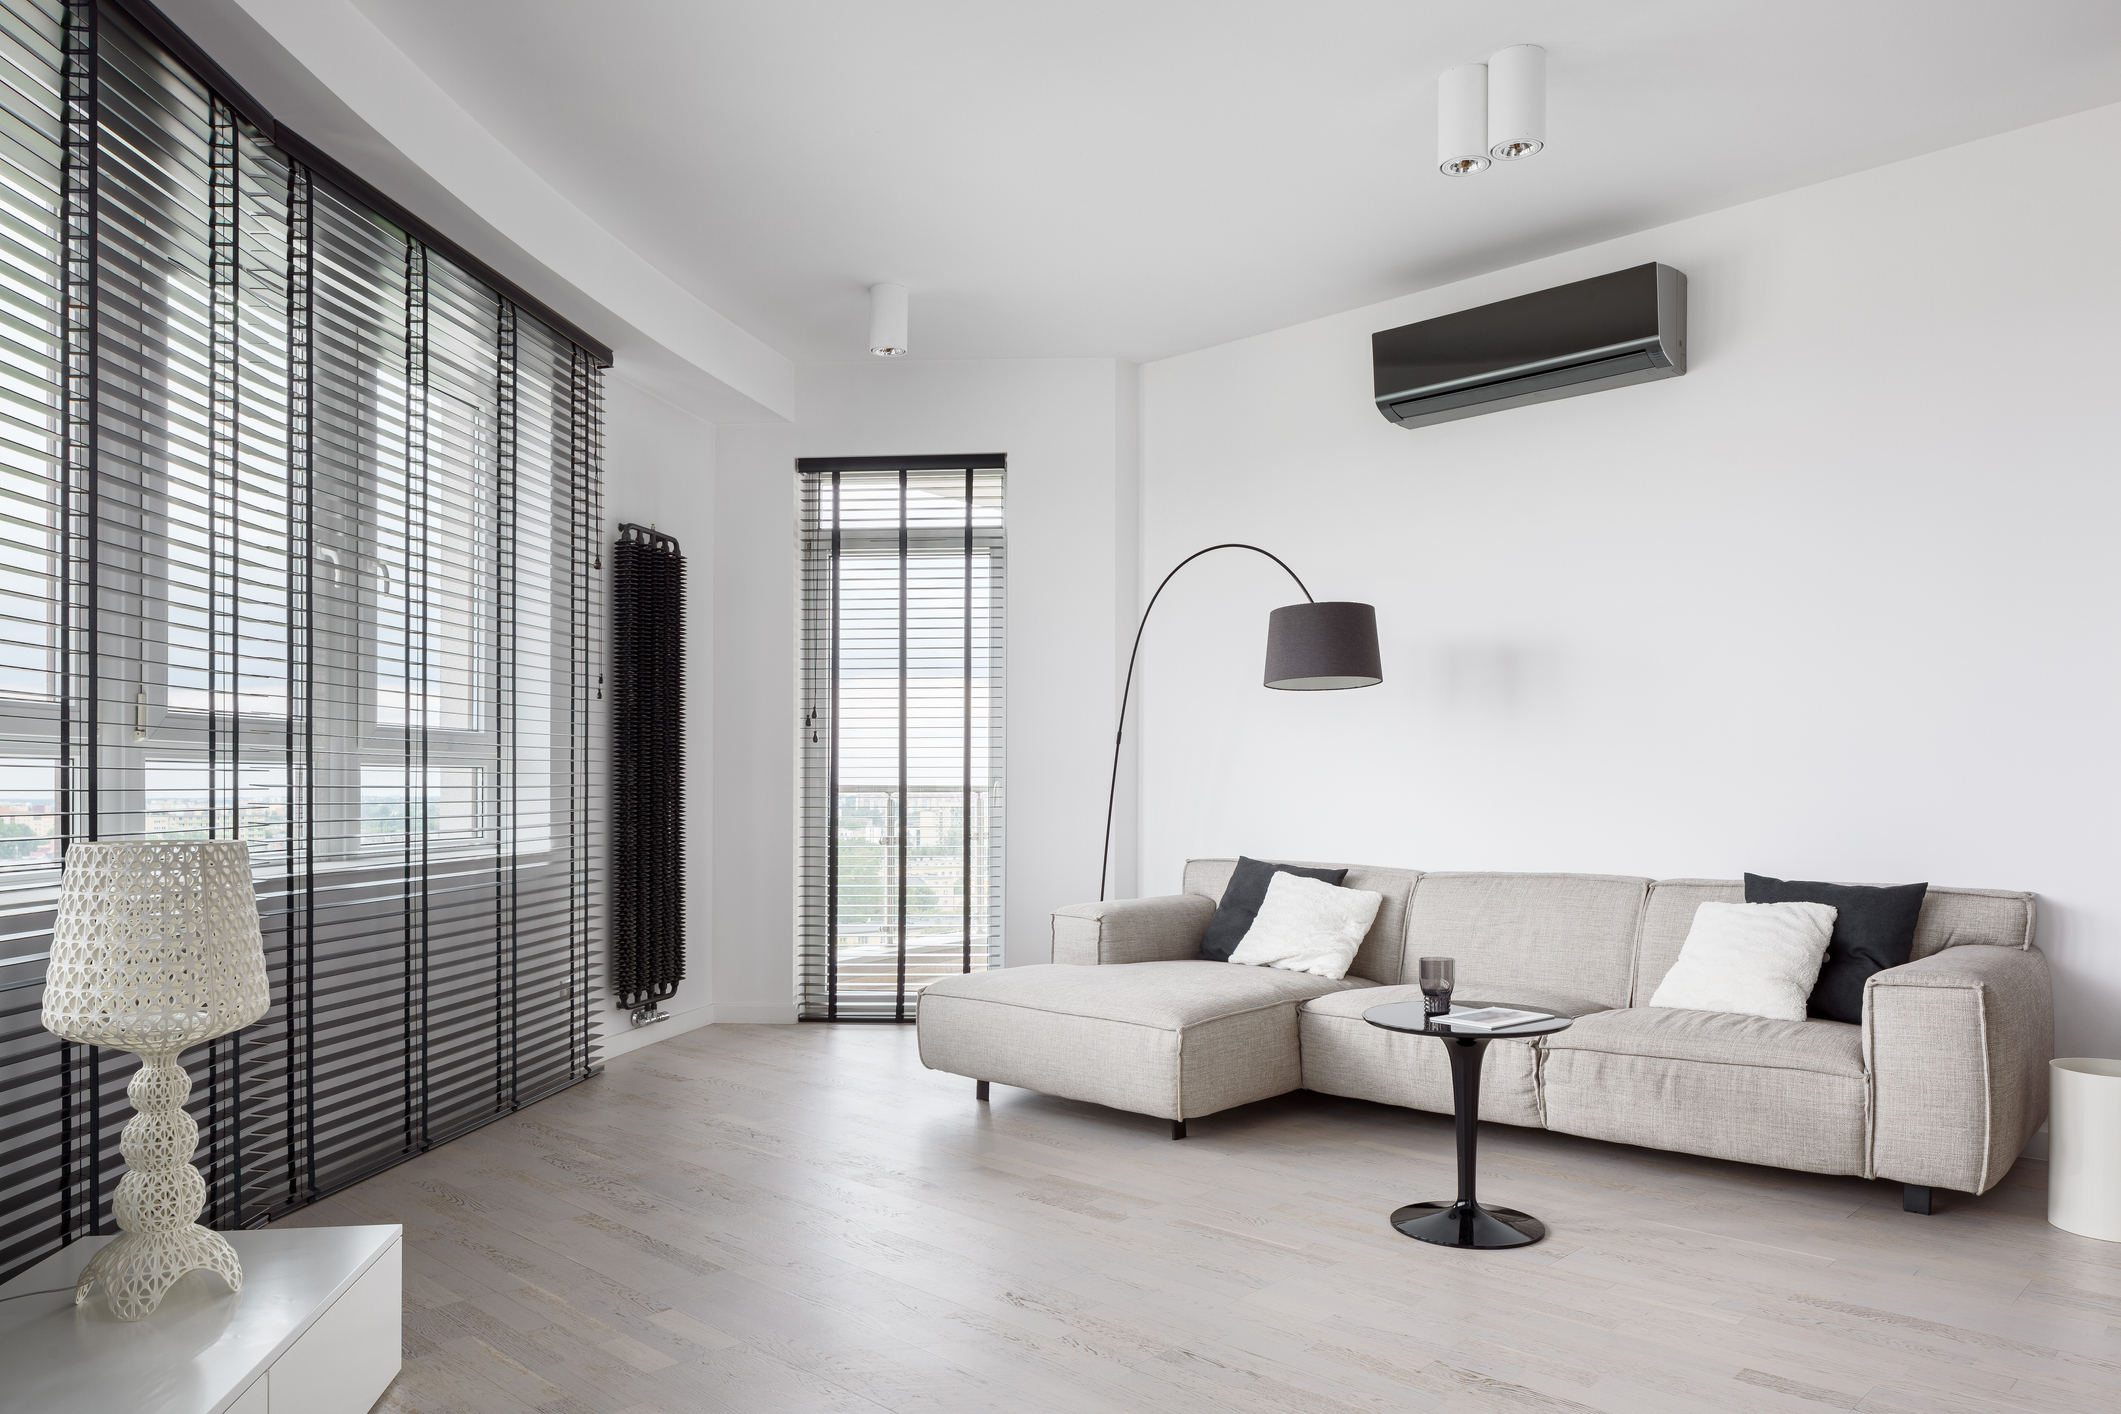 How To Determine The Right Location For Your HVAC System